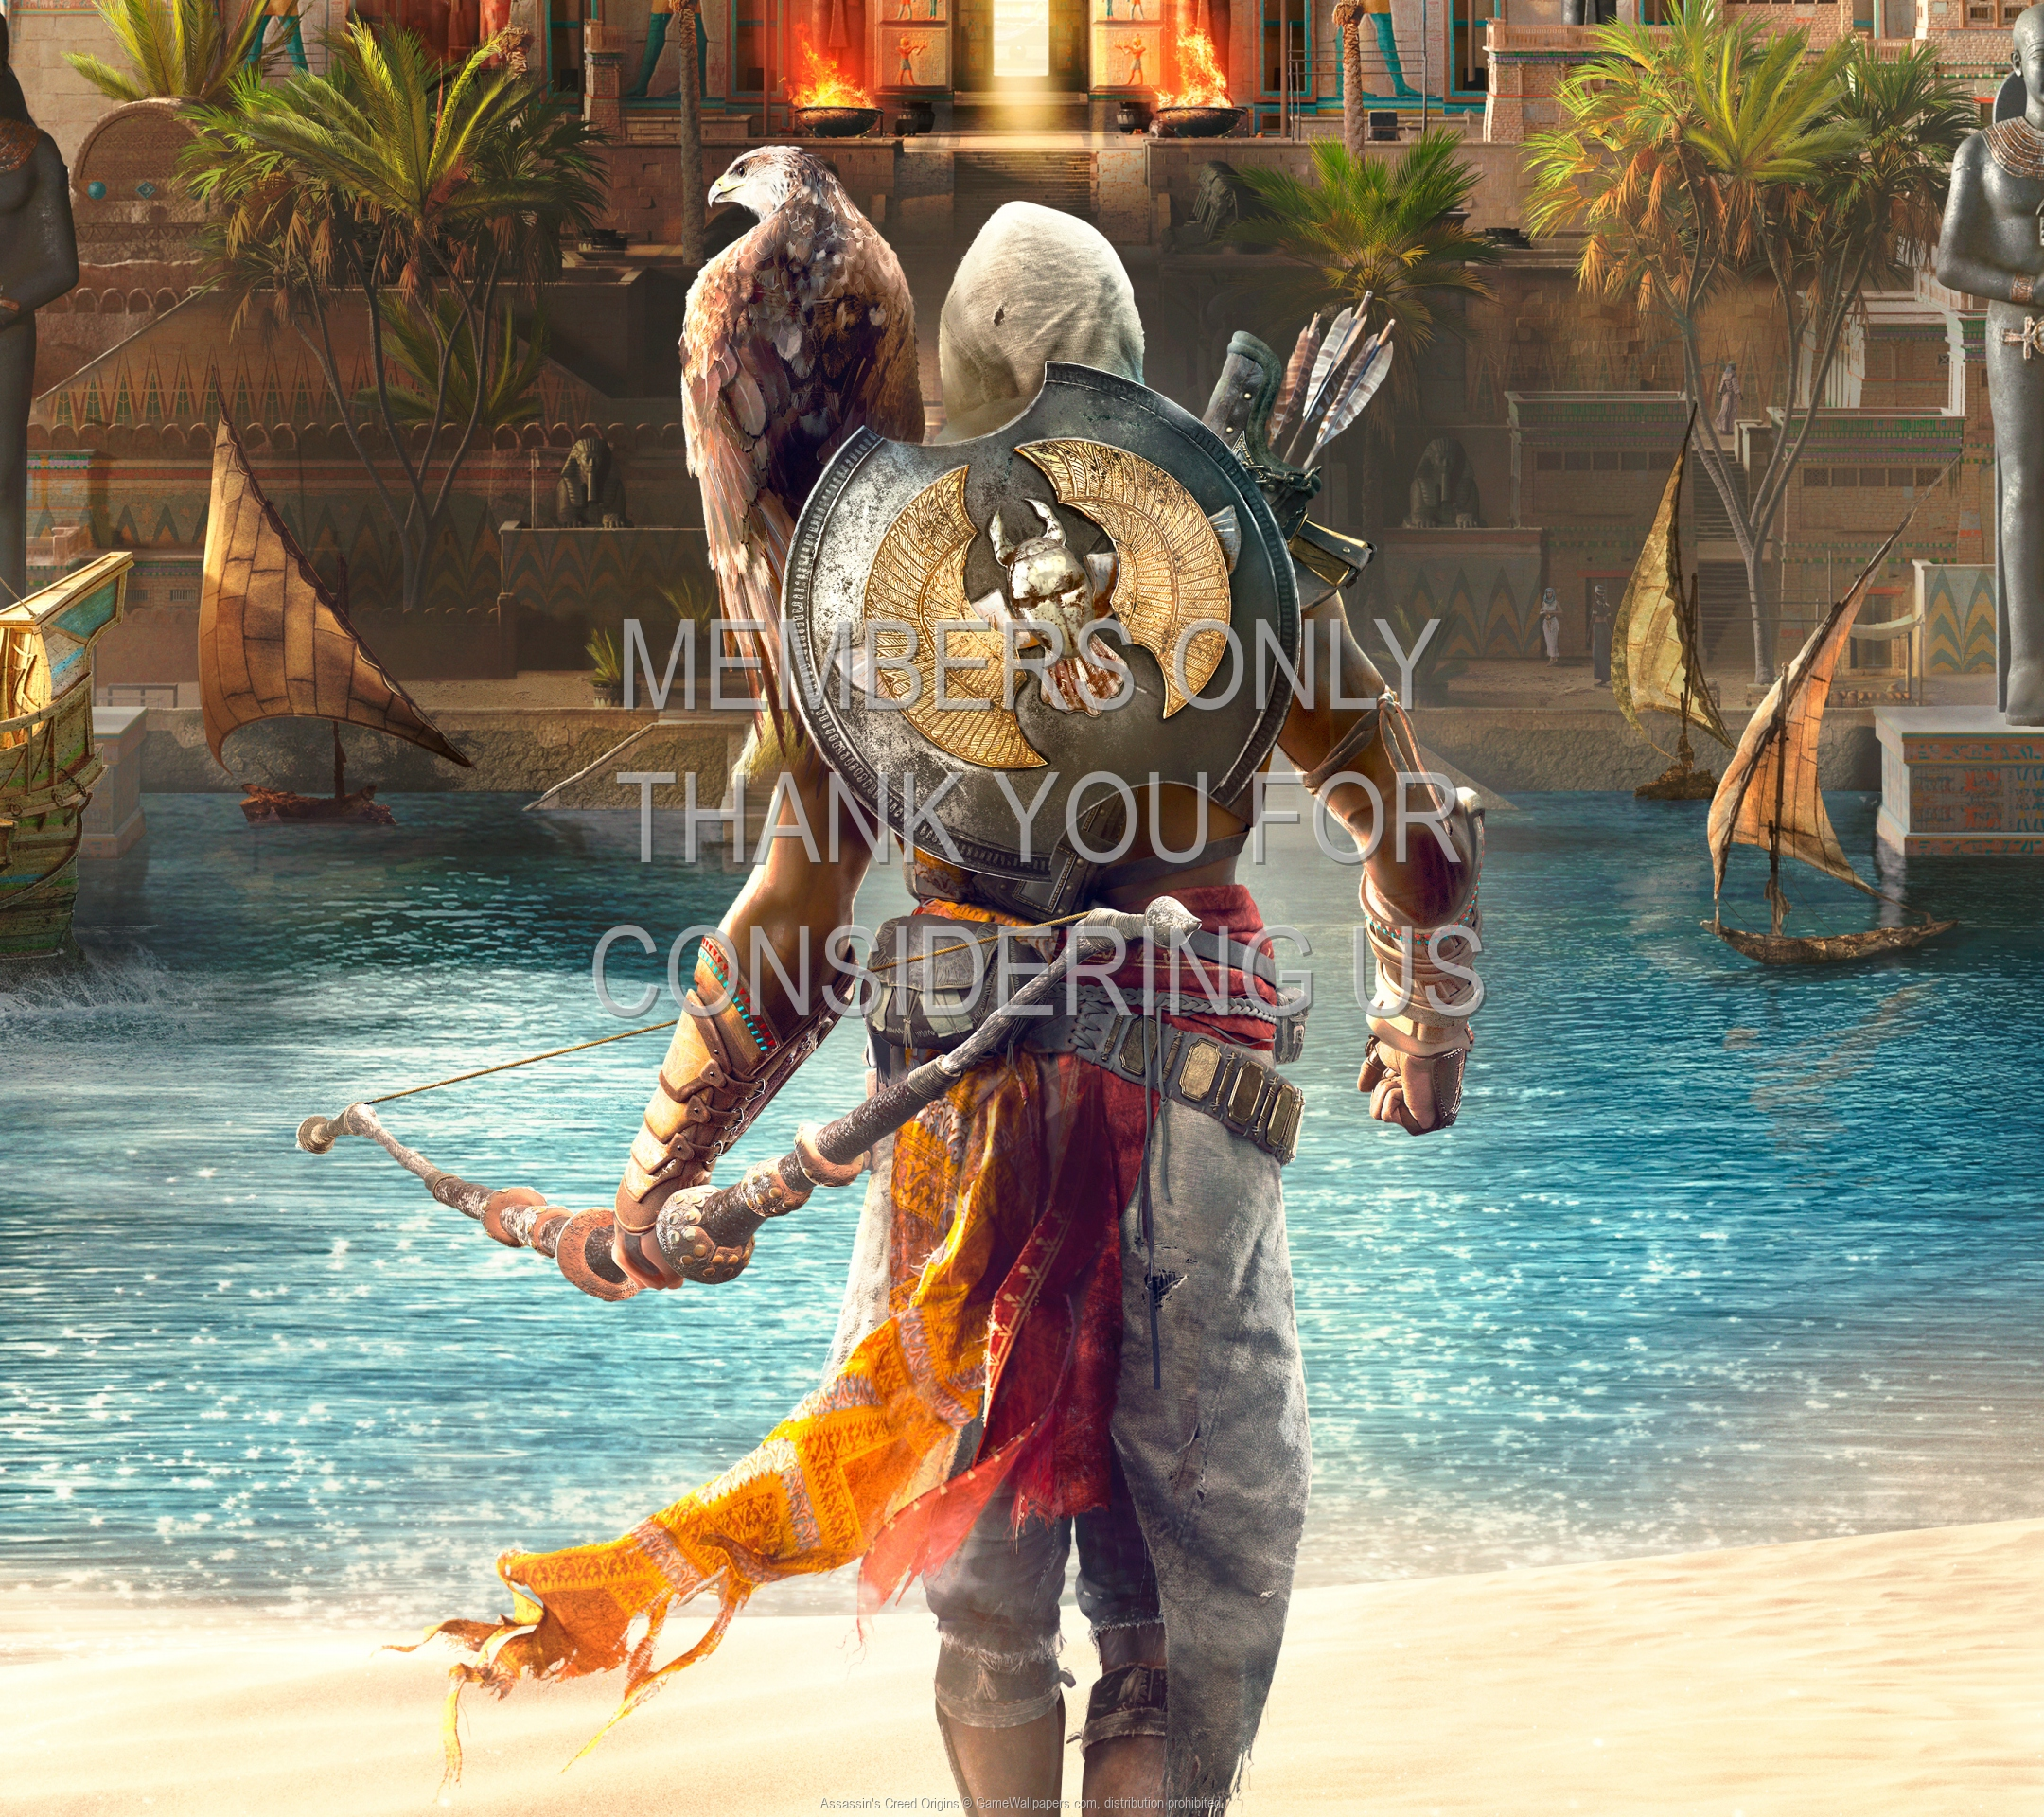 Assassin's Creed: Origins 1920x1080 Mobile wallpaper or background 01